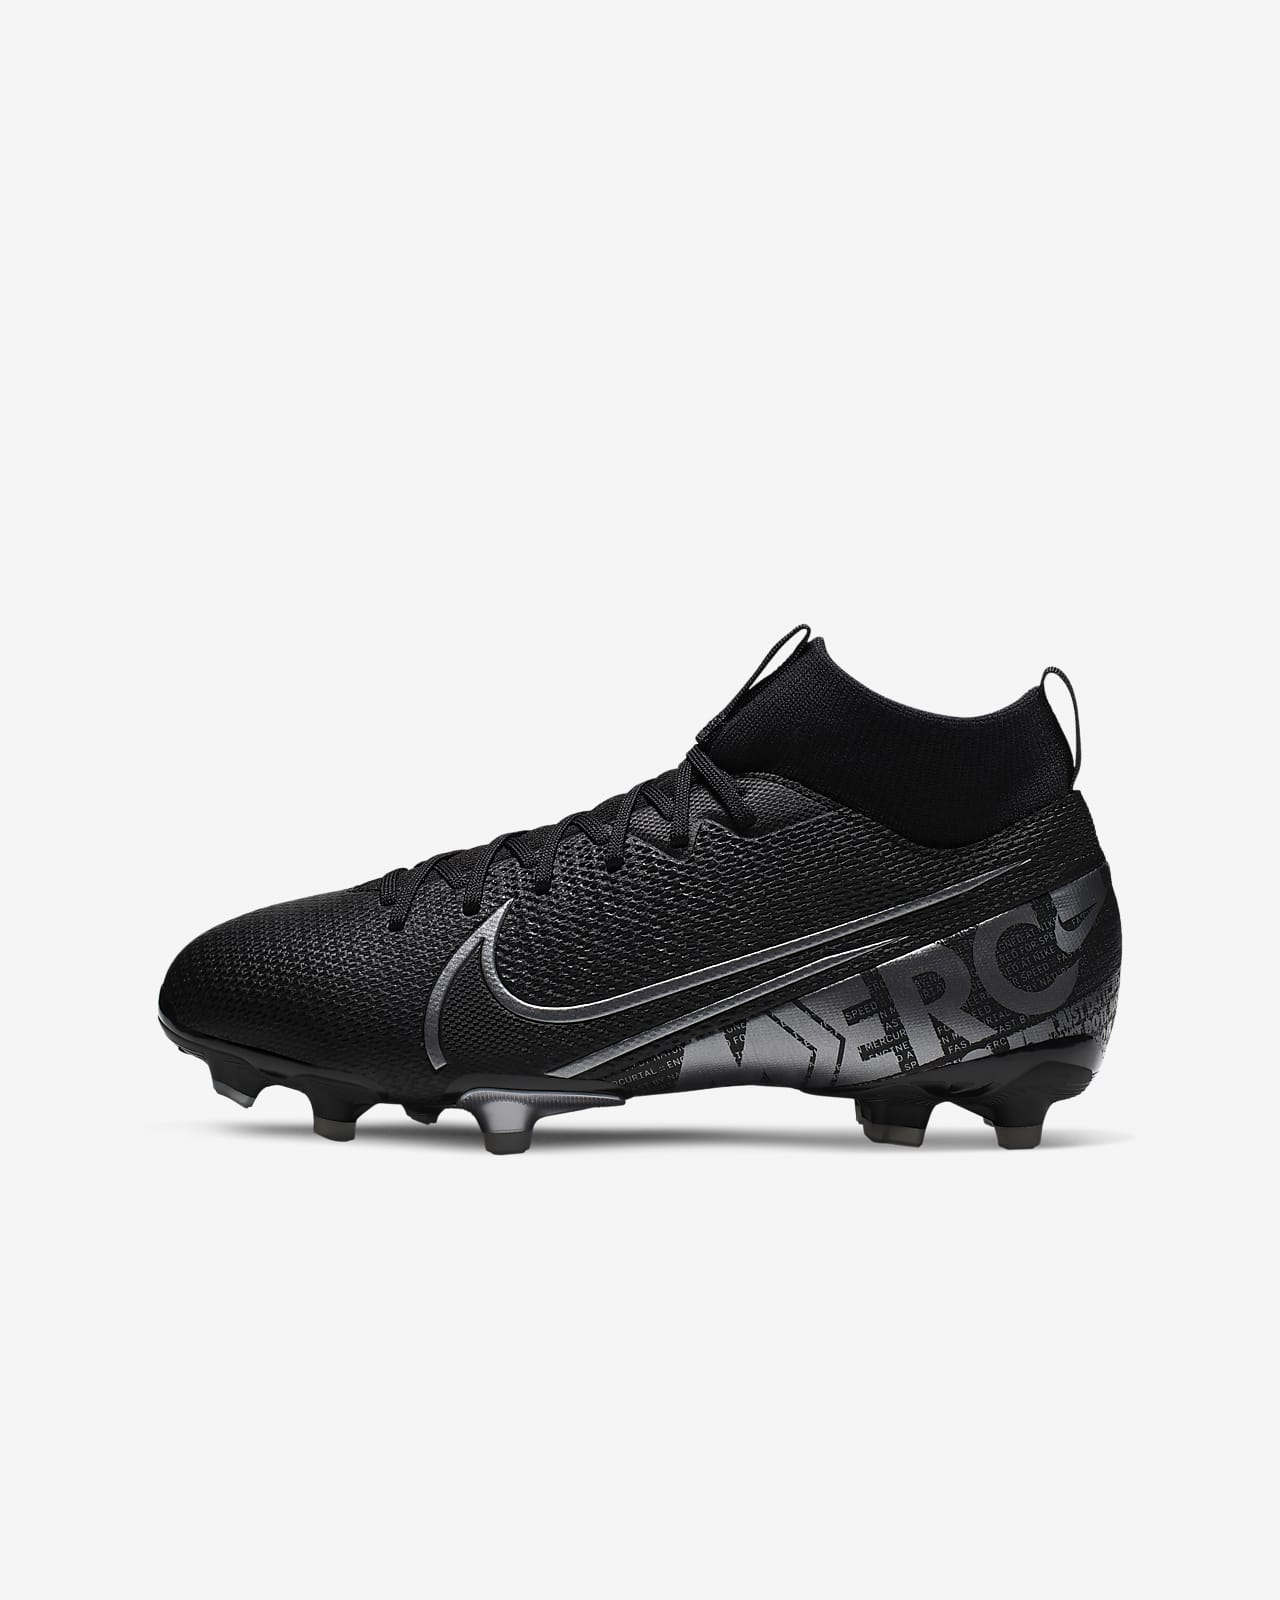 Chaussure de football multi-surfaces à crampons Nike Jr. Mercurial Superfly 7 Academy MG pour Enfant